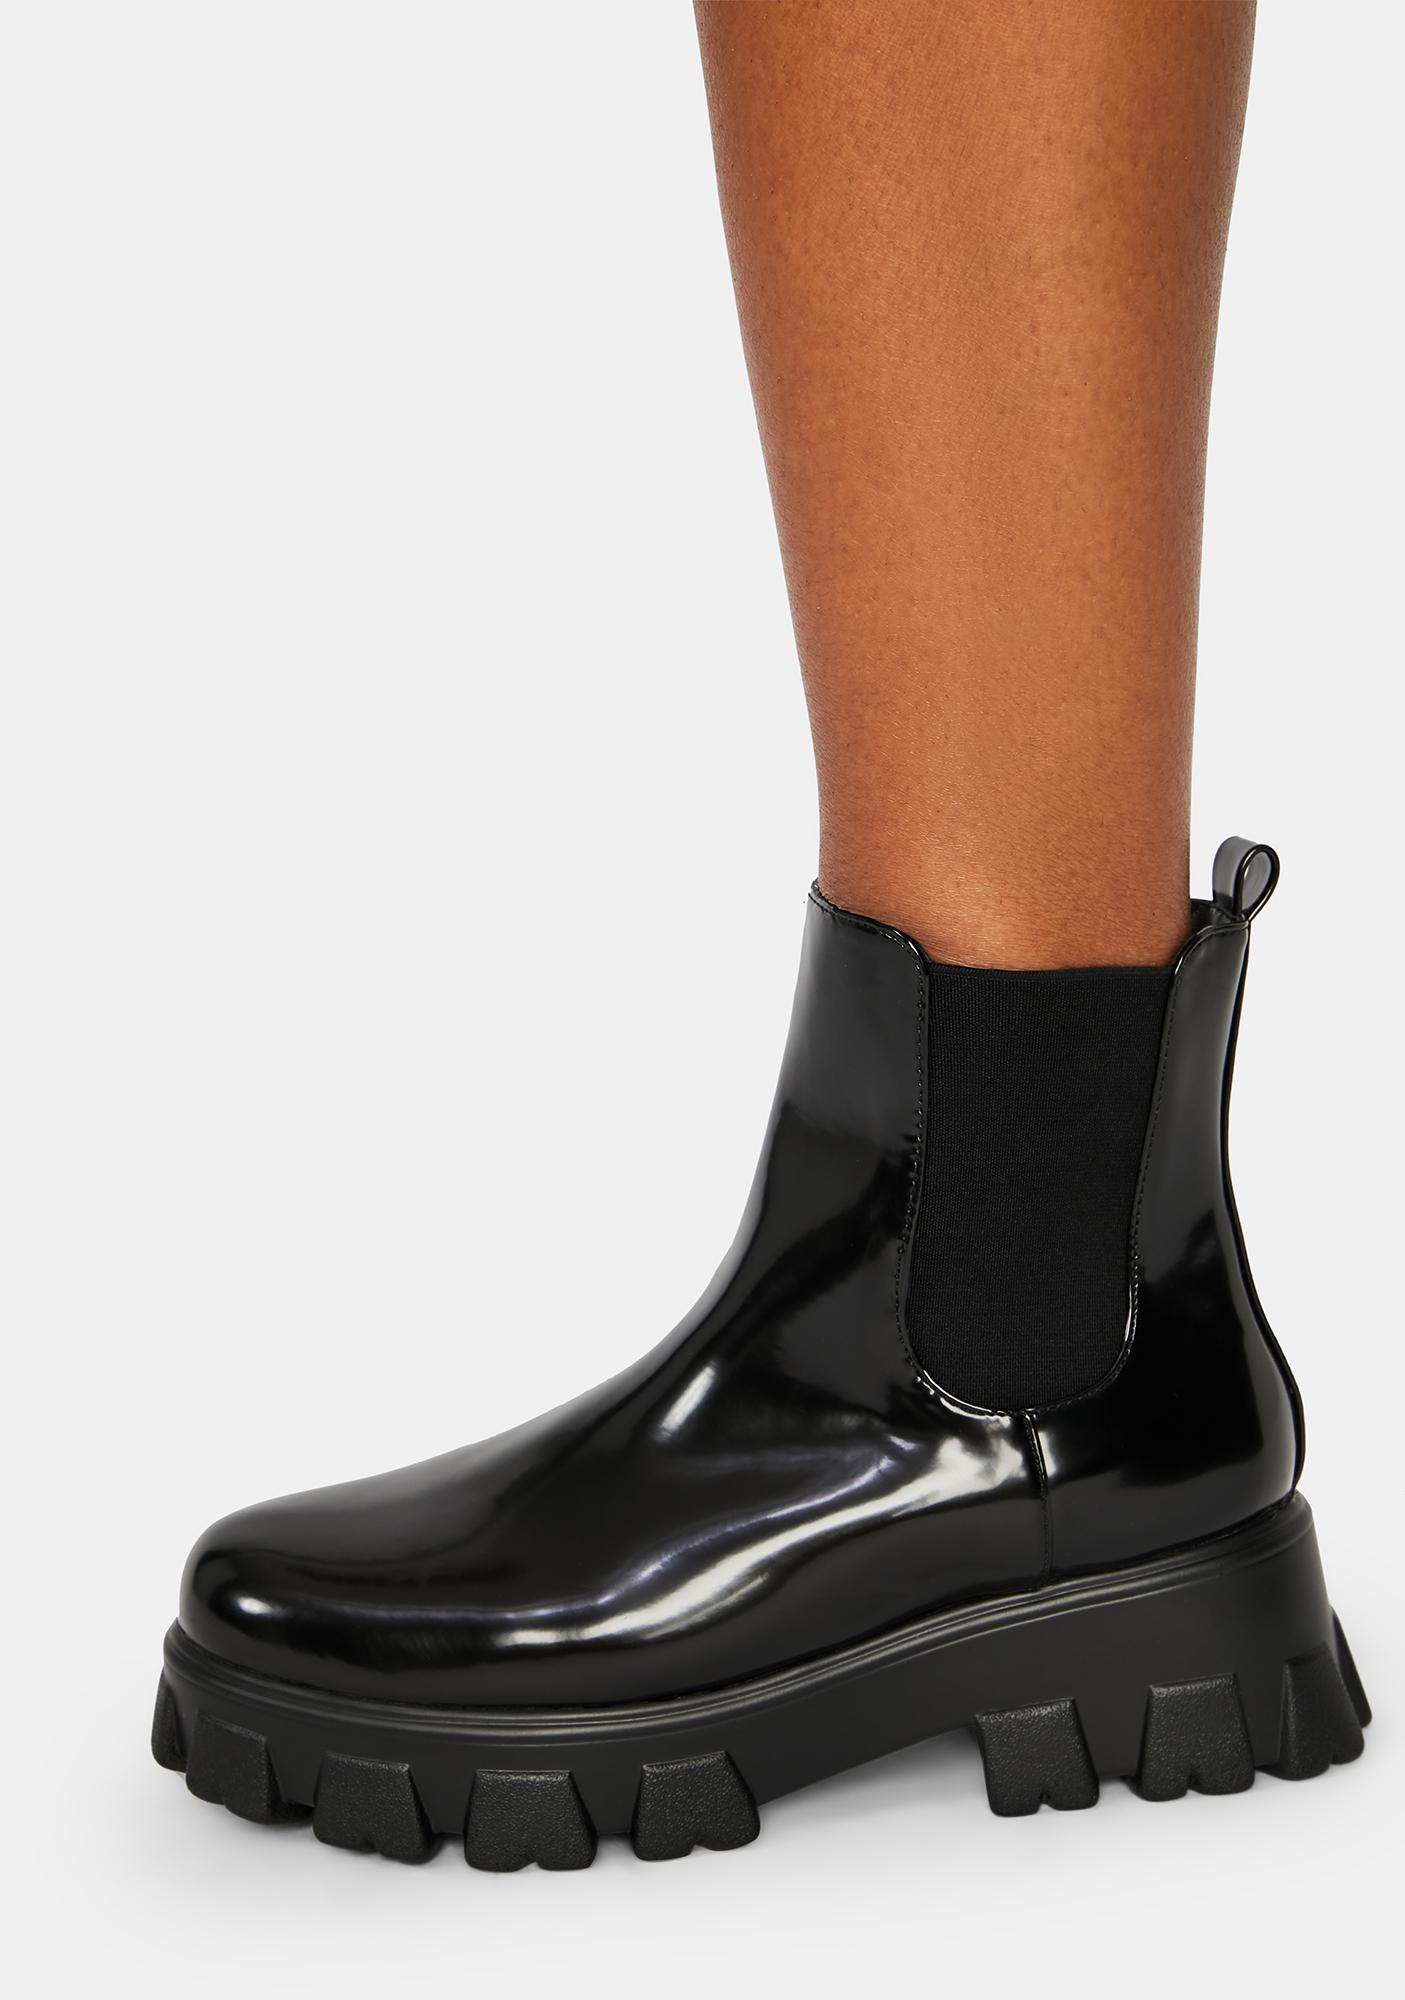 Troublemaker Known Chelsea Boots